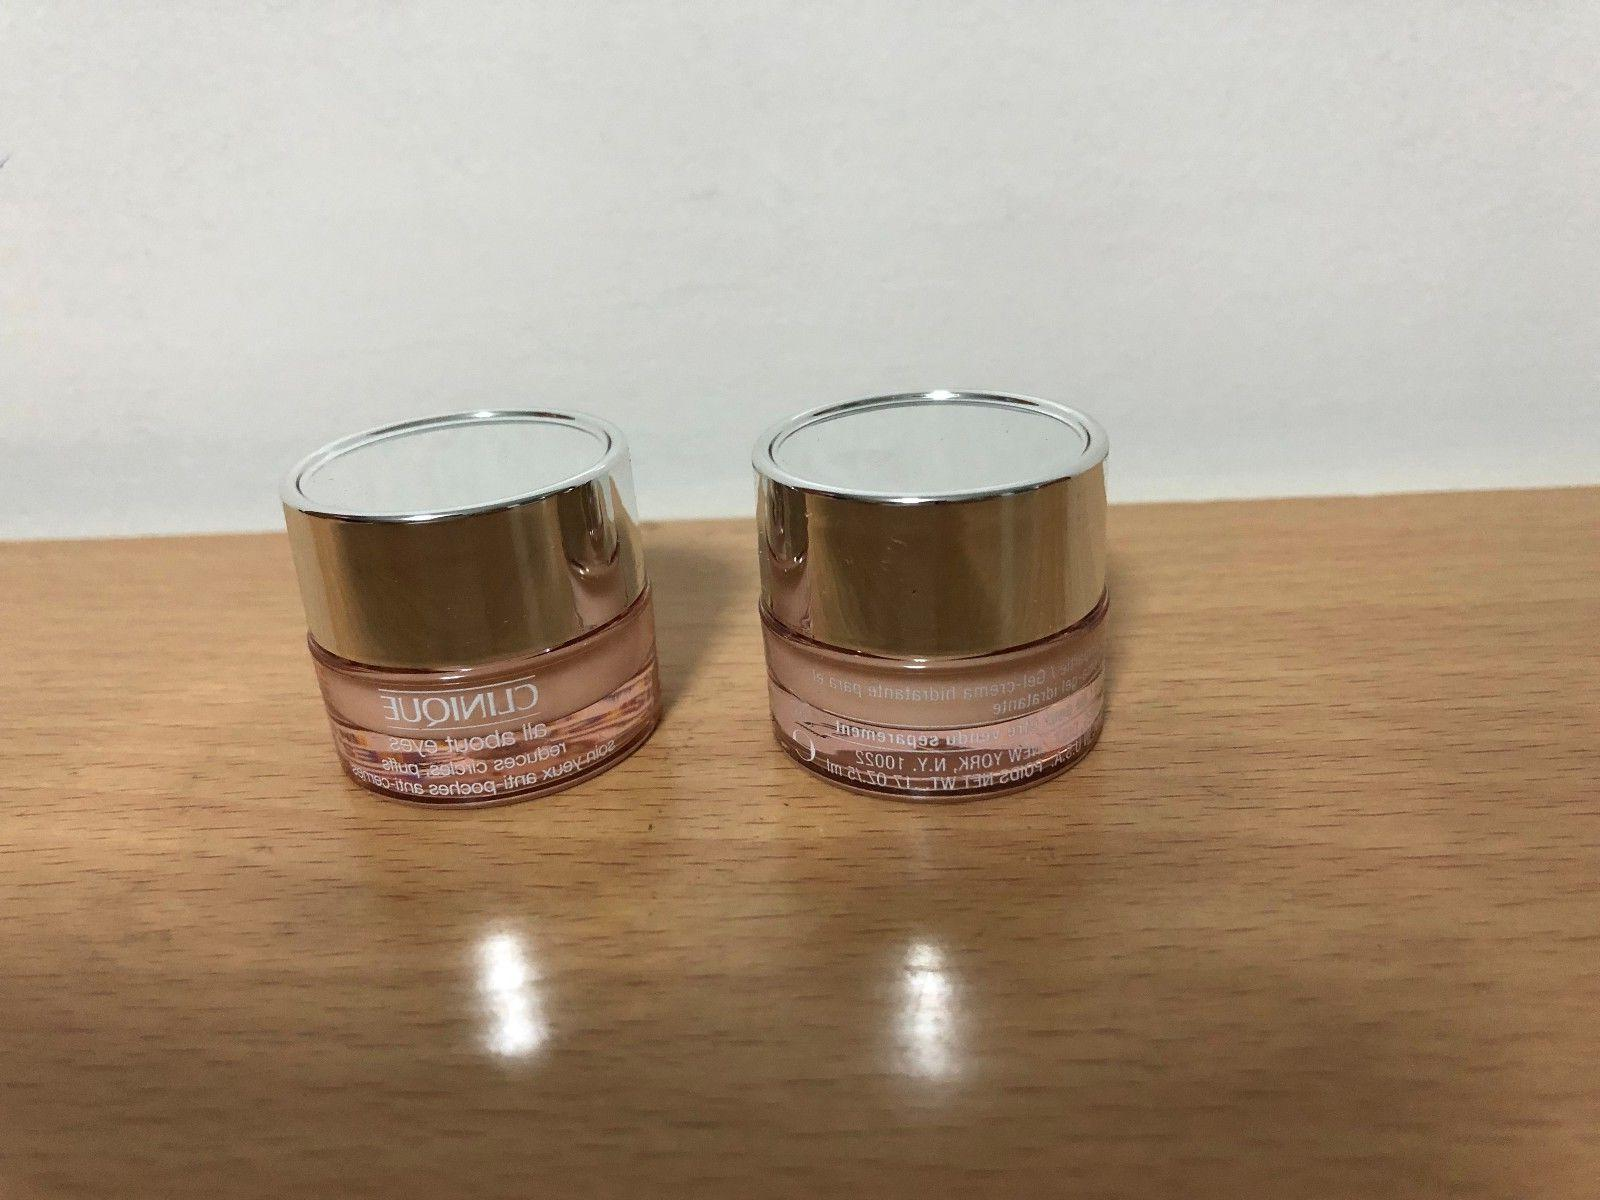 x2 Clinique All About Eyes Reduces Puffs Circle Cream 0.17oz